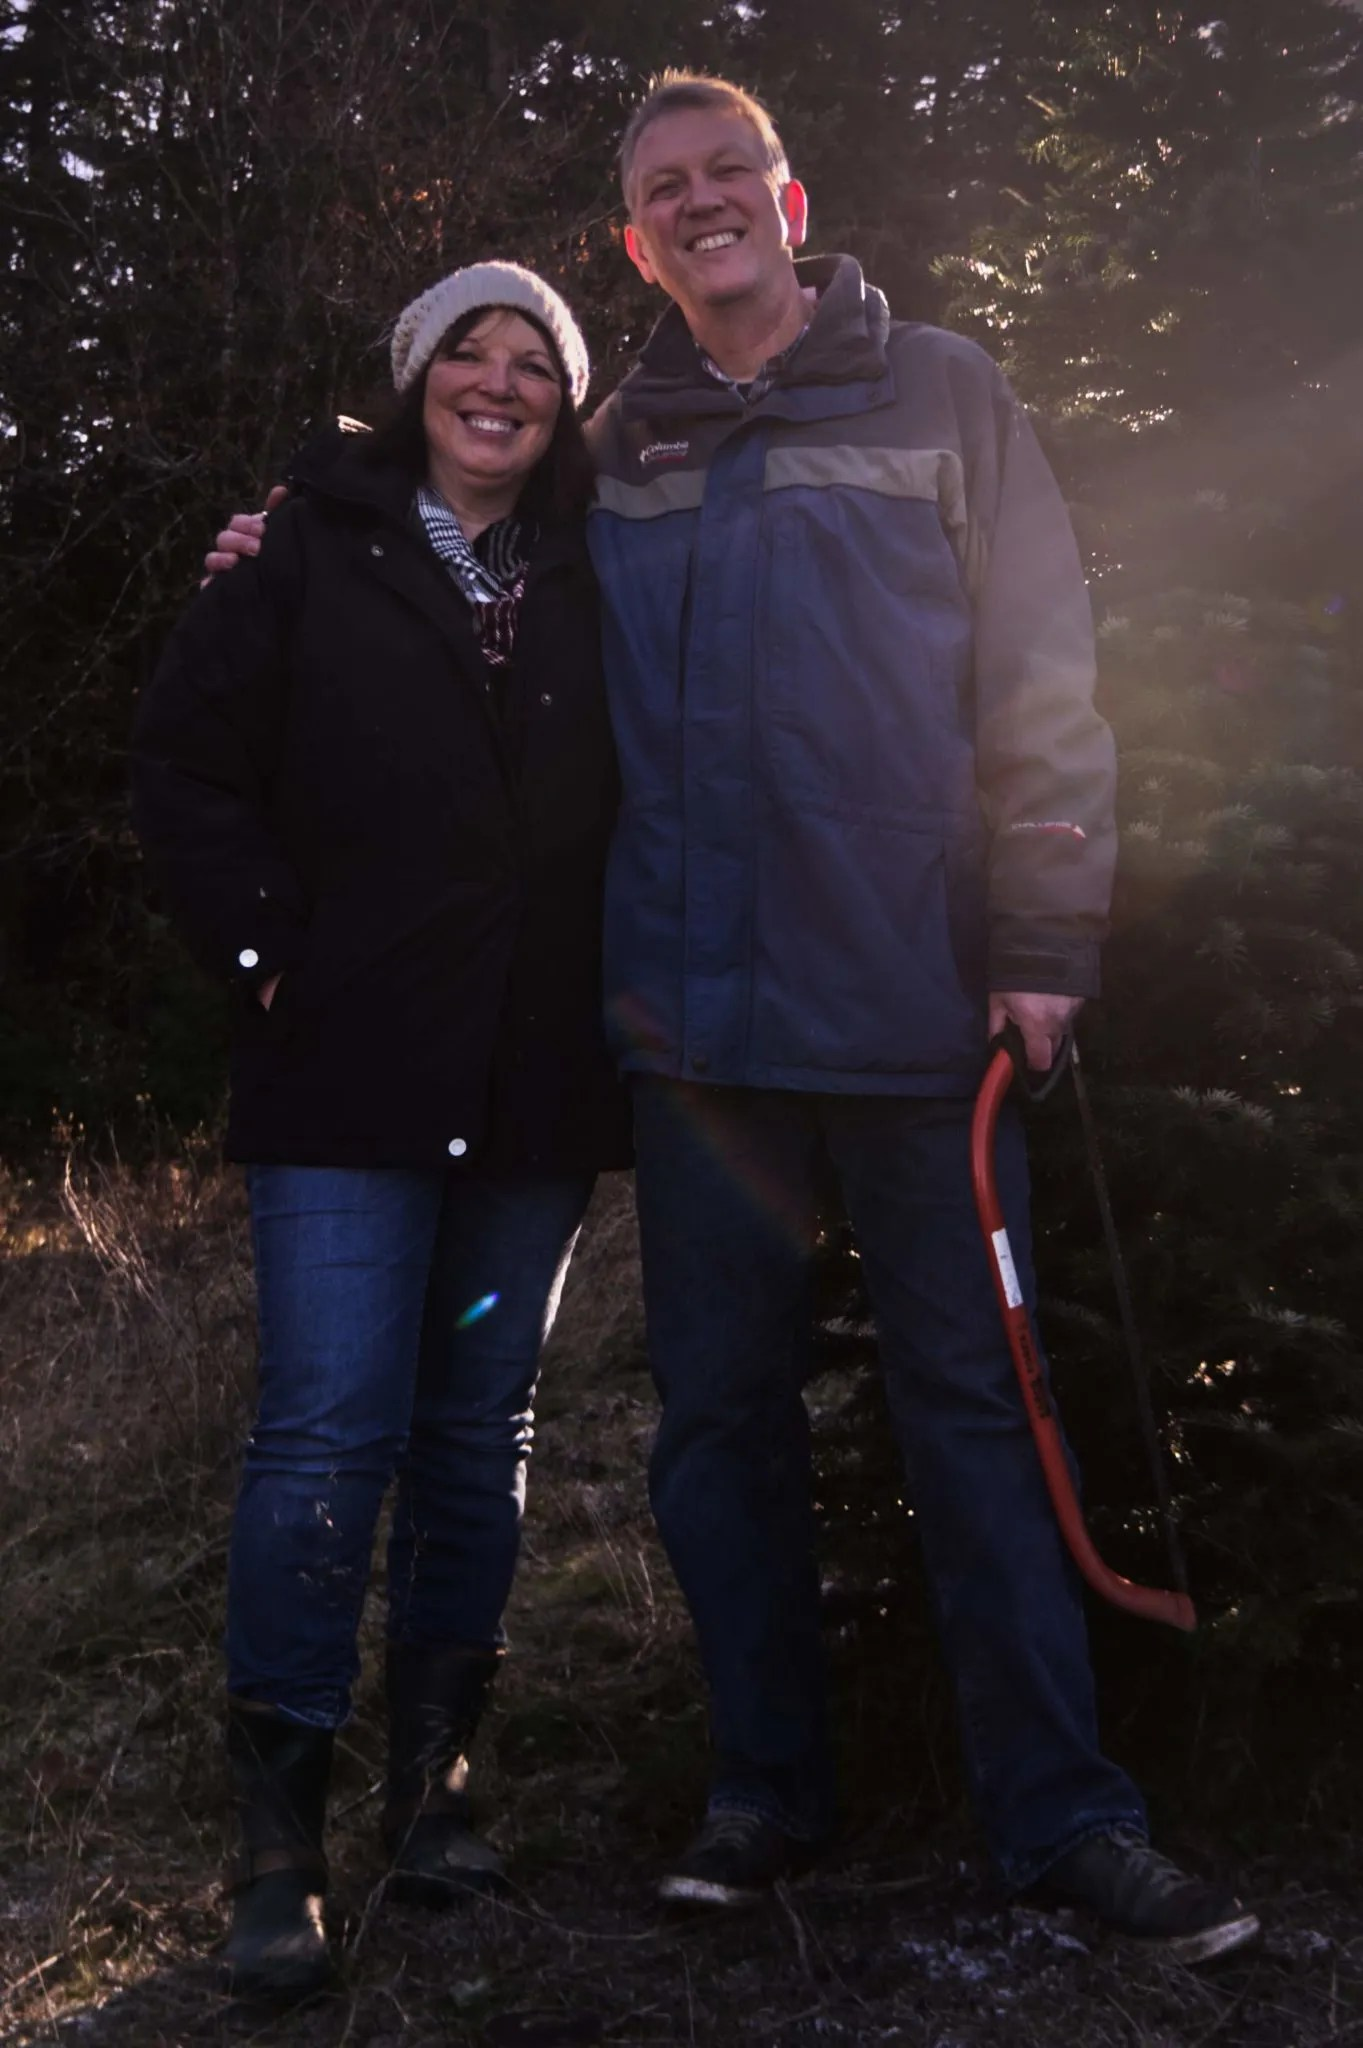 Suzi and me by our tree